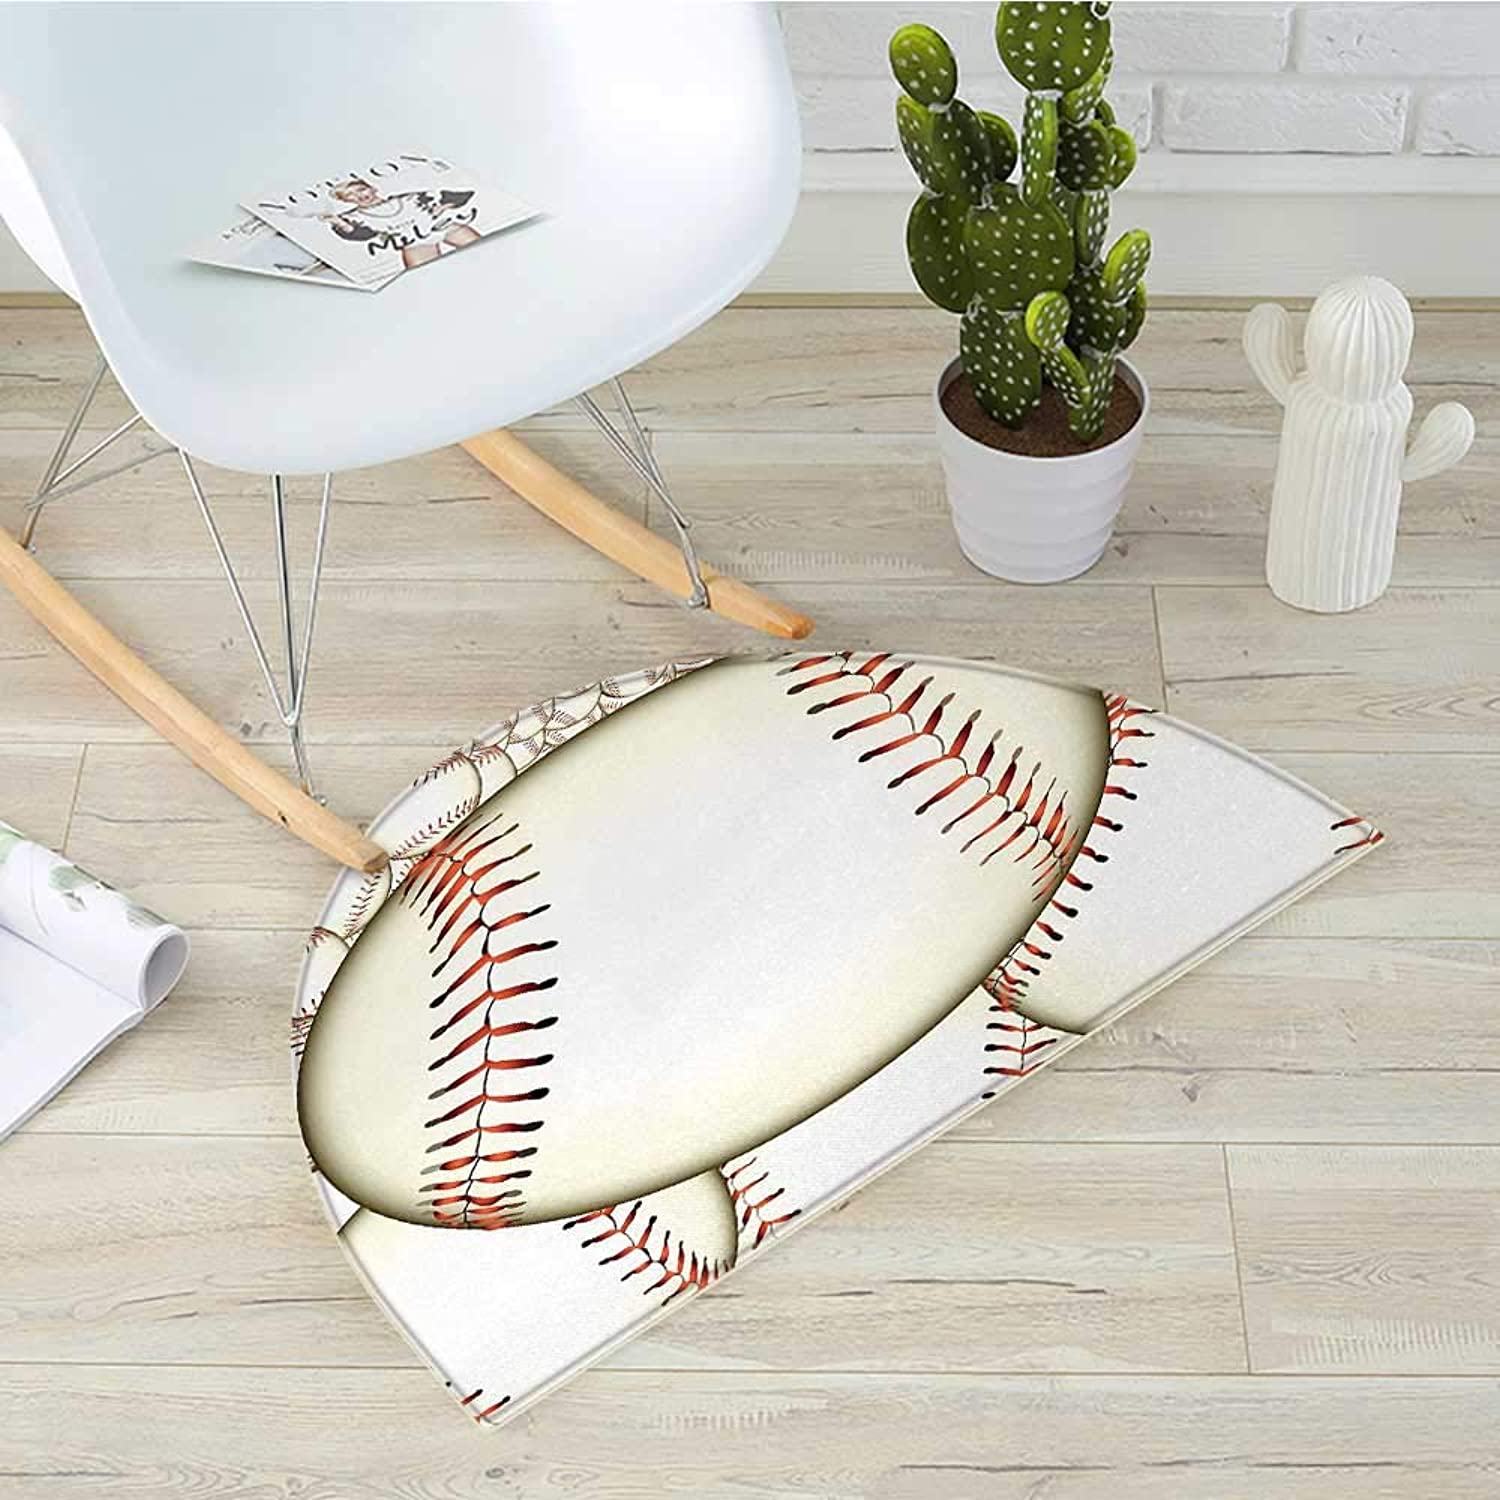 Baseball Semicircle Doormat Pattern of Baseball Balls Background Home Run Rules of The Game Success Score Print Halfmoon doormats H 31.5  xD 47.2  Cream Red